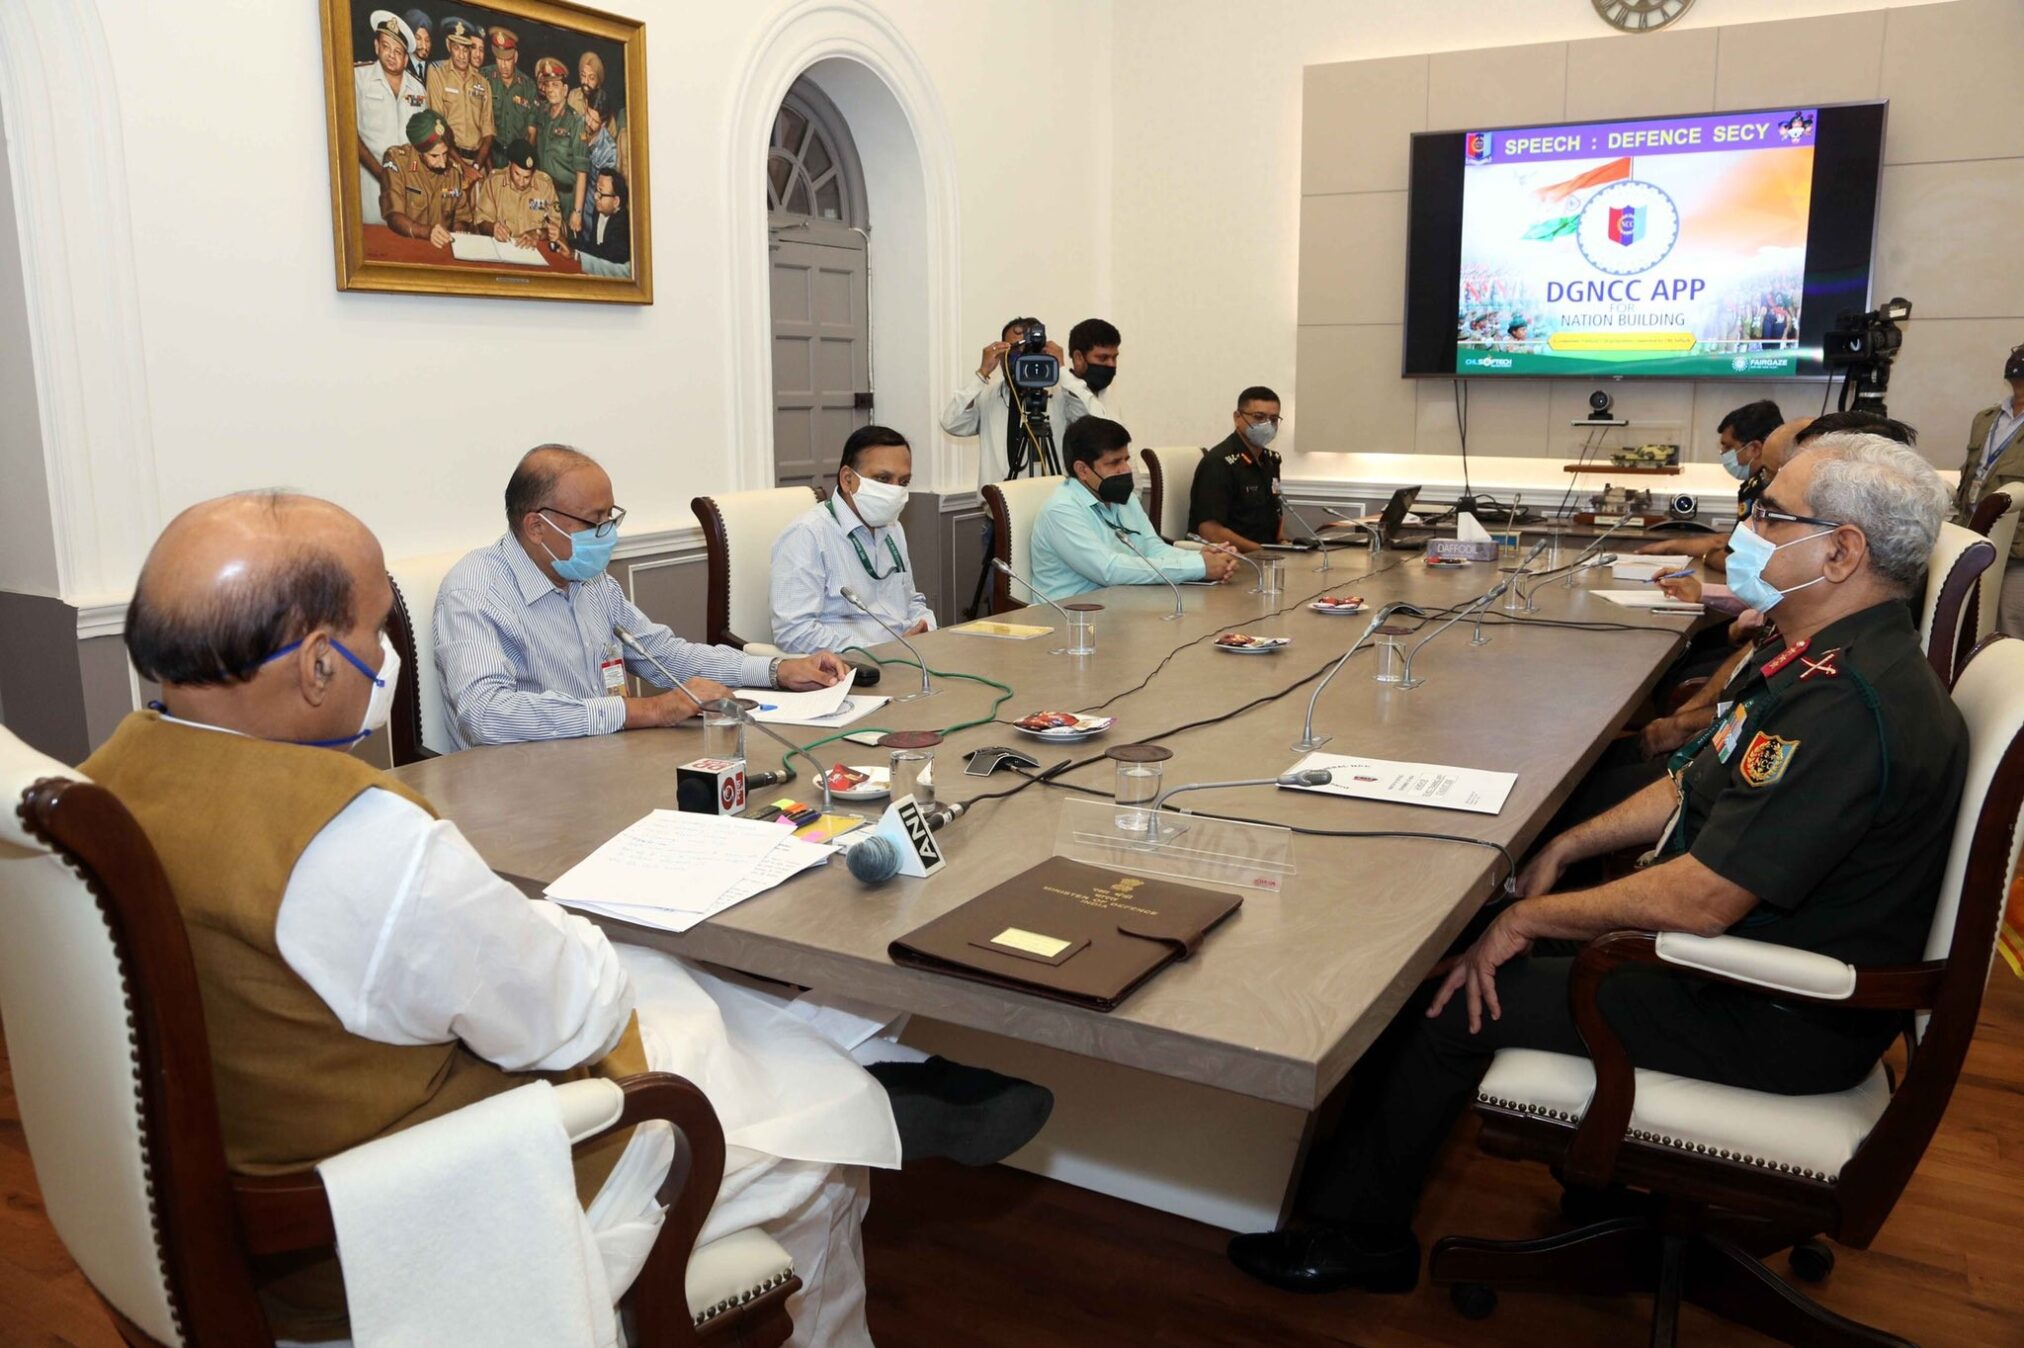 Rajnath Singh Launches Mobile training app for NCC cadets - The Wall Post